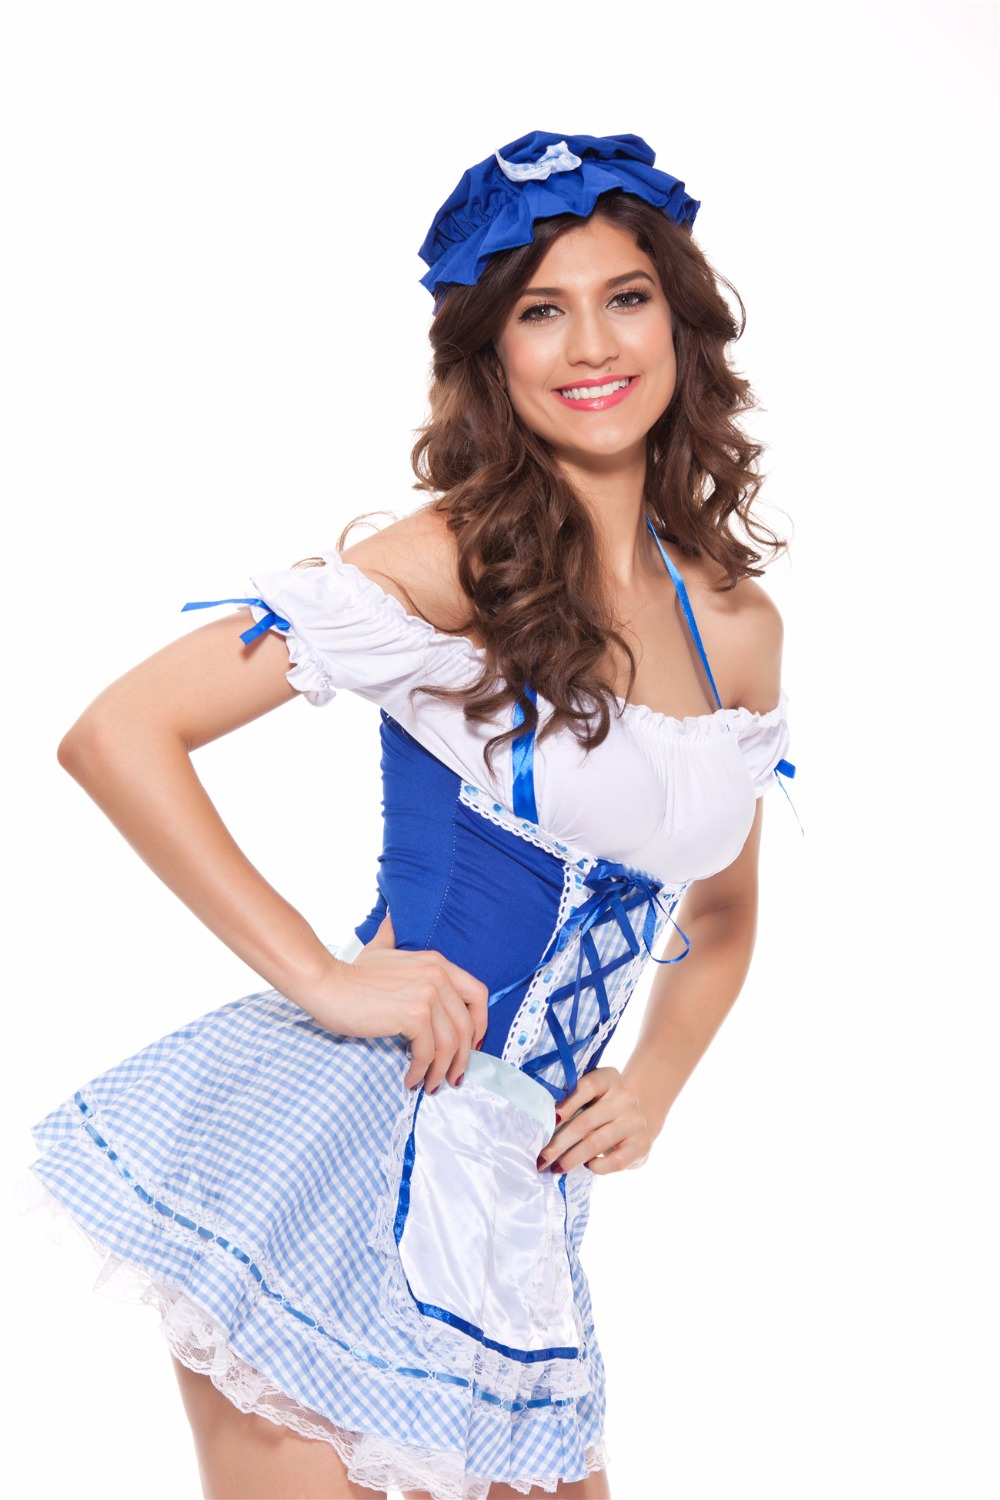 Maid Uniform Costumes For Women 1120 Y French Costume In Holidays From Novelty Special Use On Aliexpress Alibaba Group